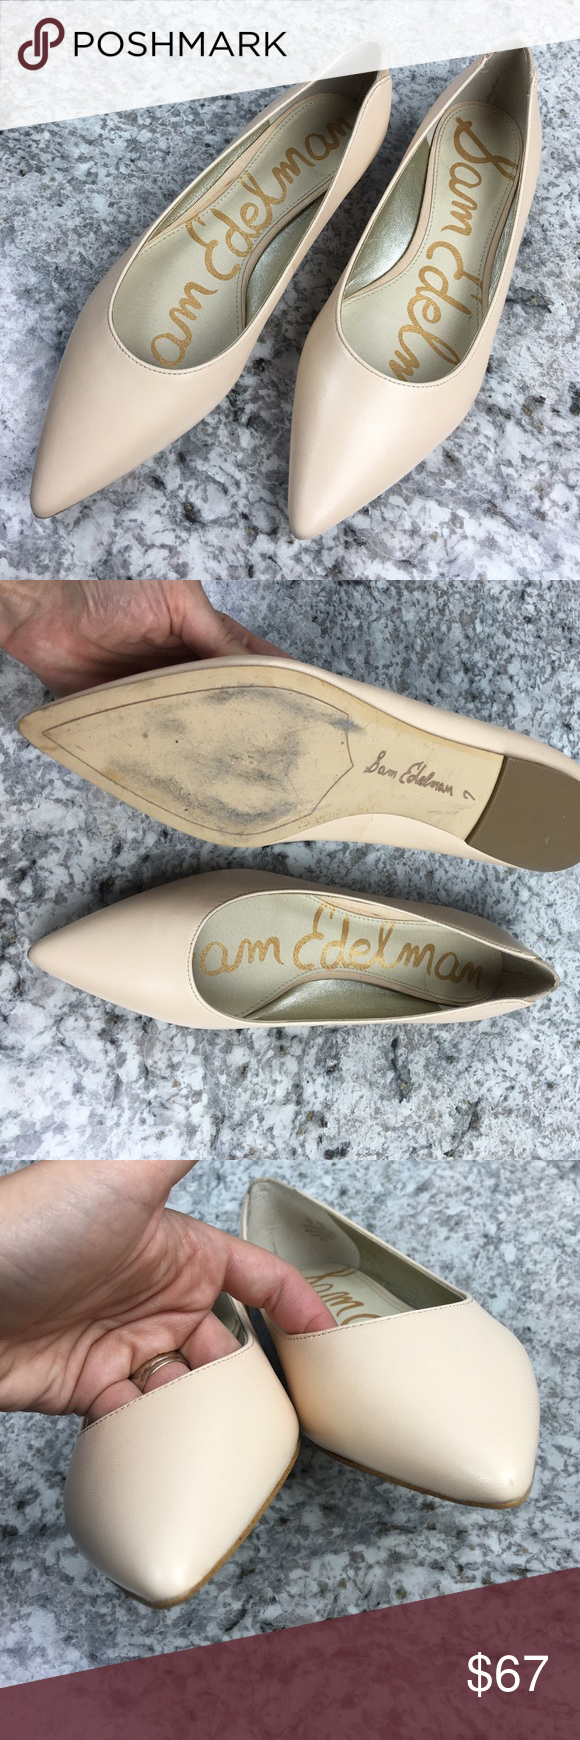 c55b1bf97 Sam Edelman rae nude pointed toe dress flat Brand new without tags. Trying  on wear